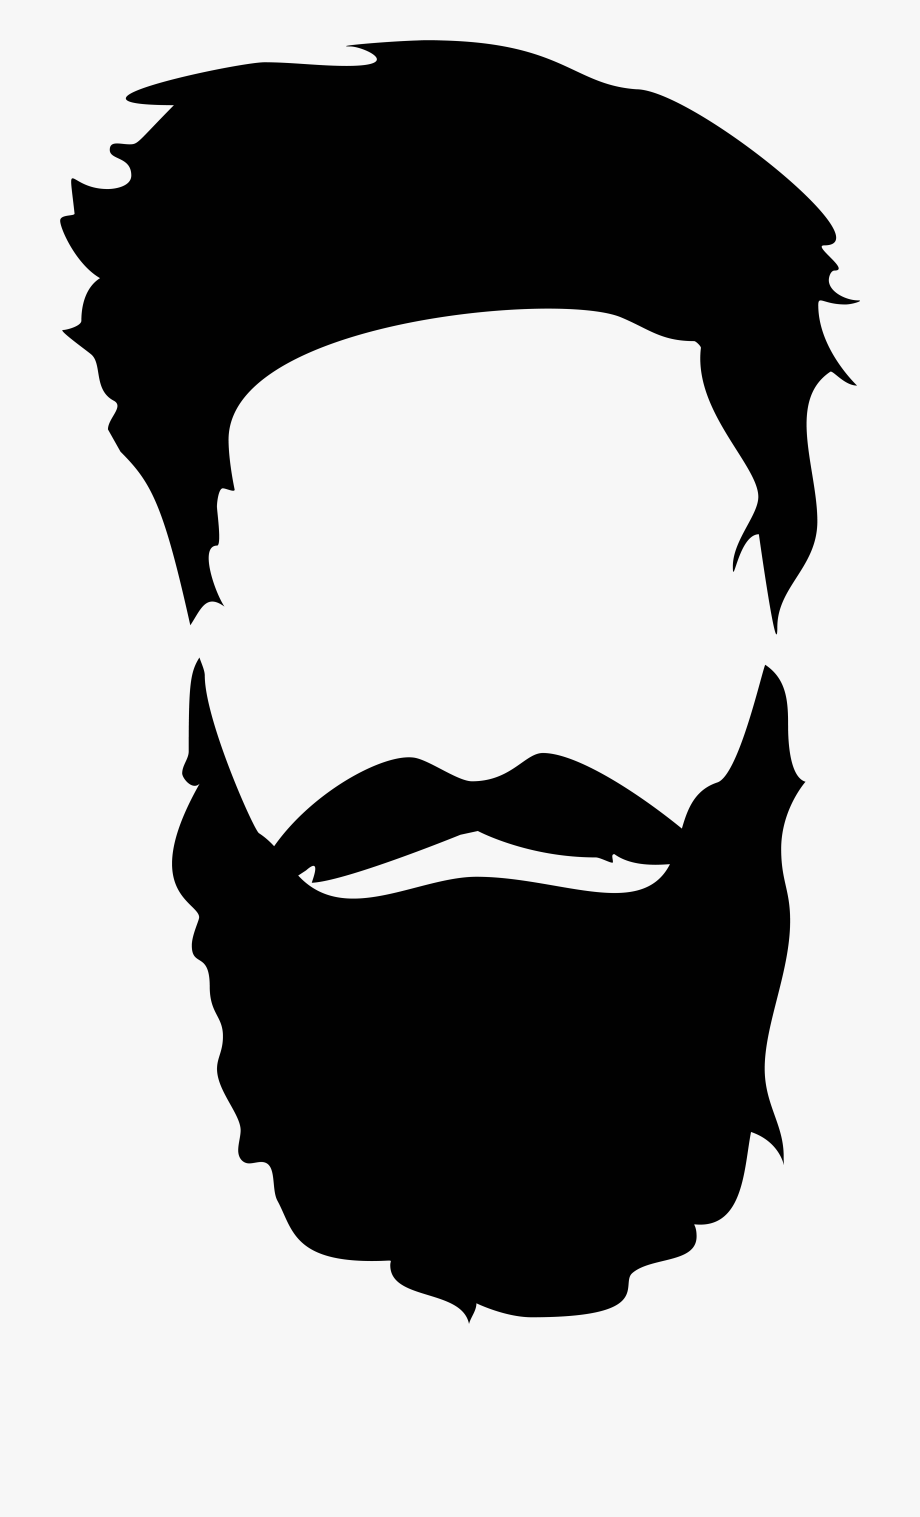 Bread clipart with face jpg royalty free Clipart Face Bread - Beard And Mustache Png, Cliparts & Cartoons ... jpg royalty free